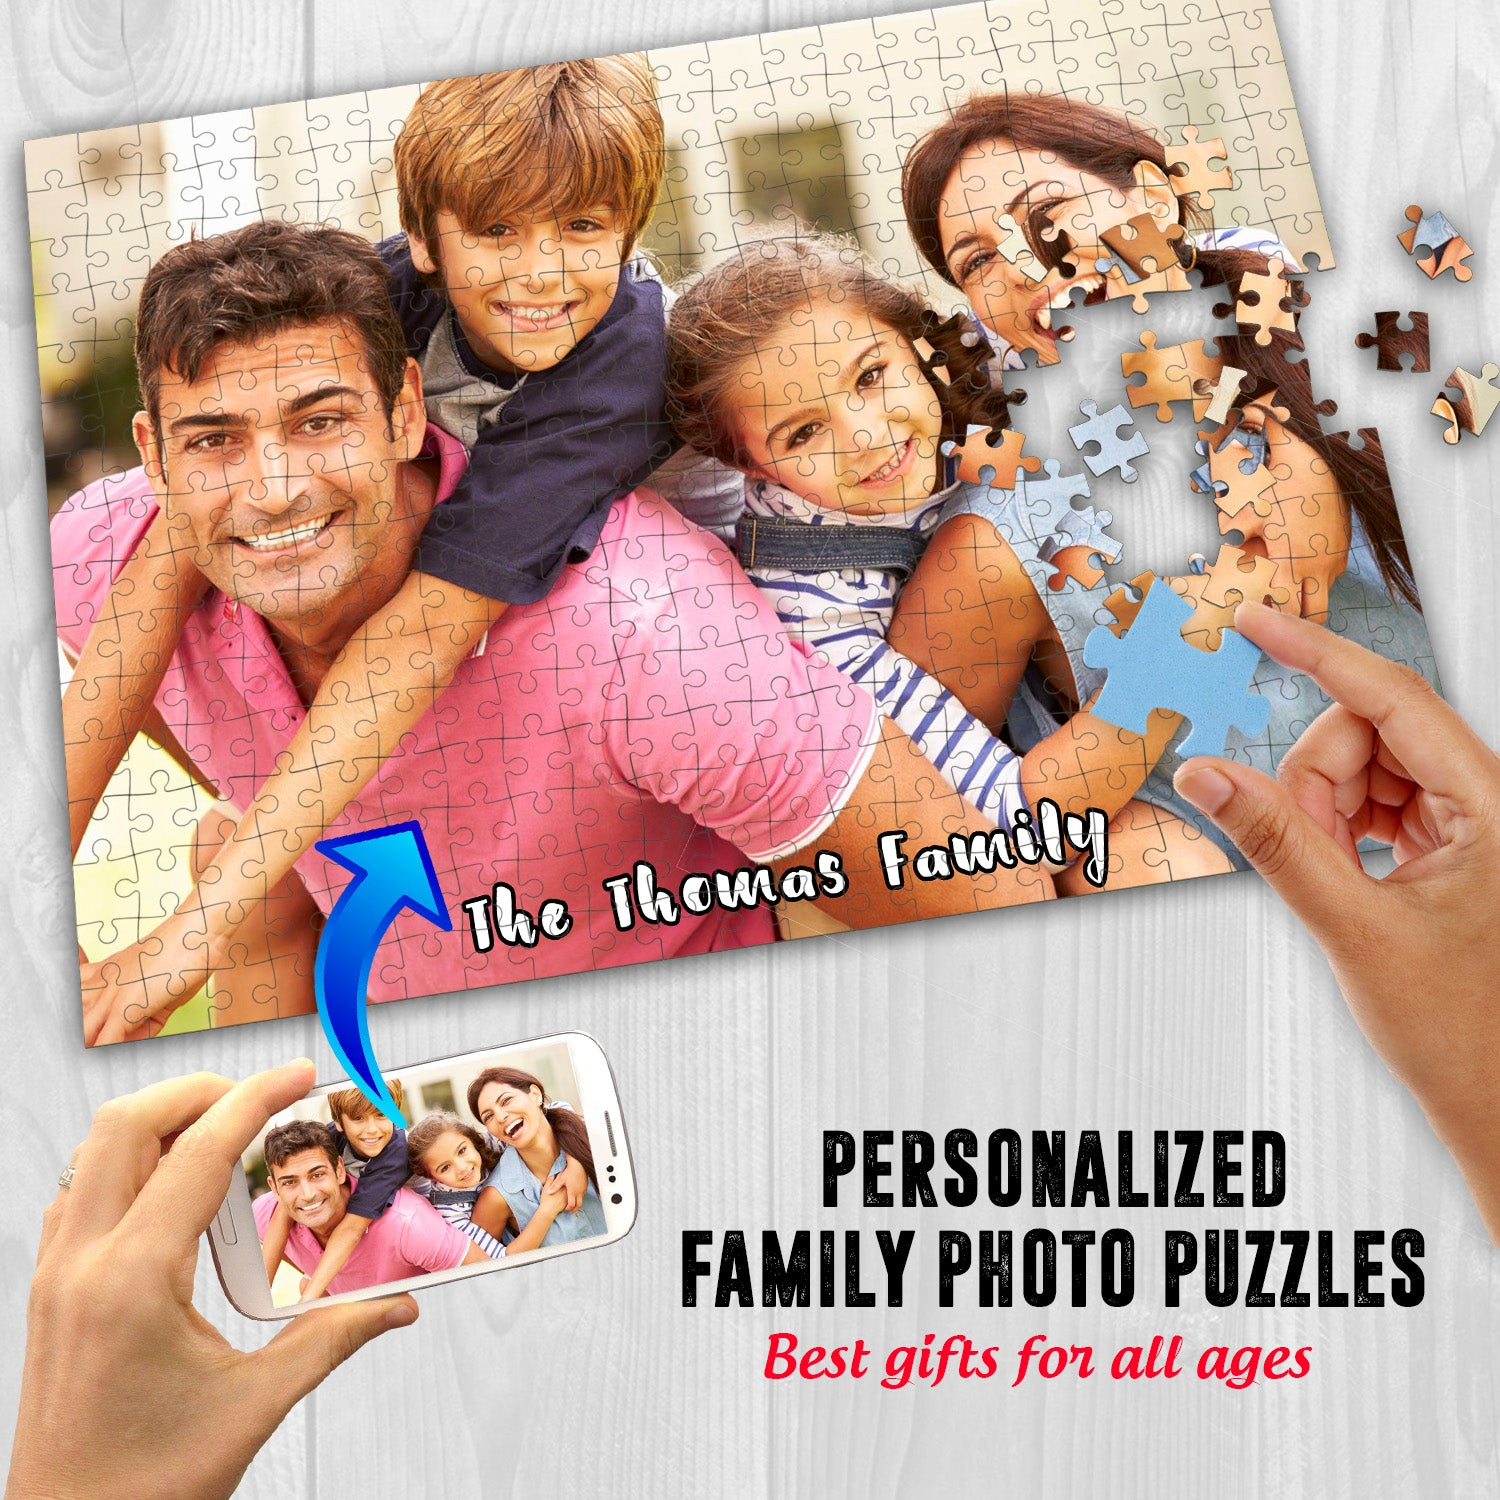 Personalized Family Photo Puzzles 10x14 Inches